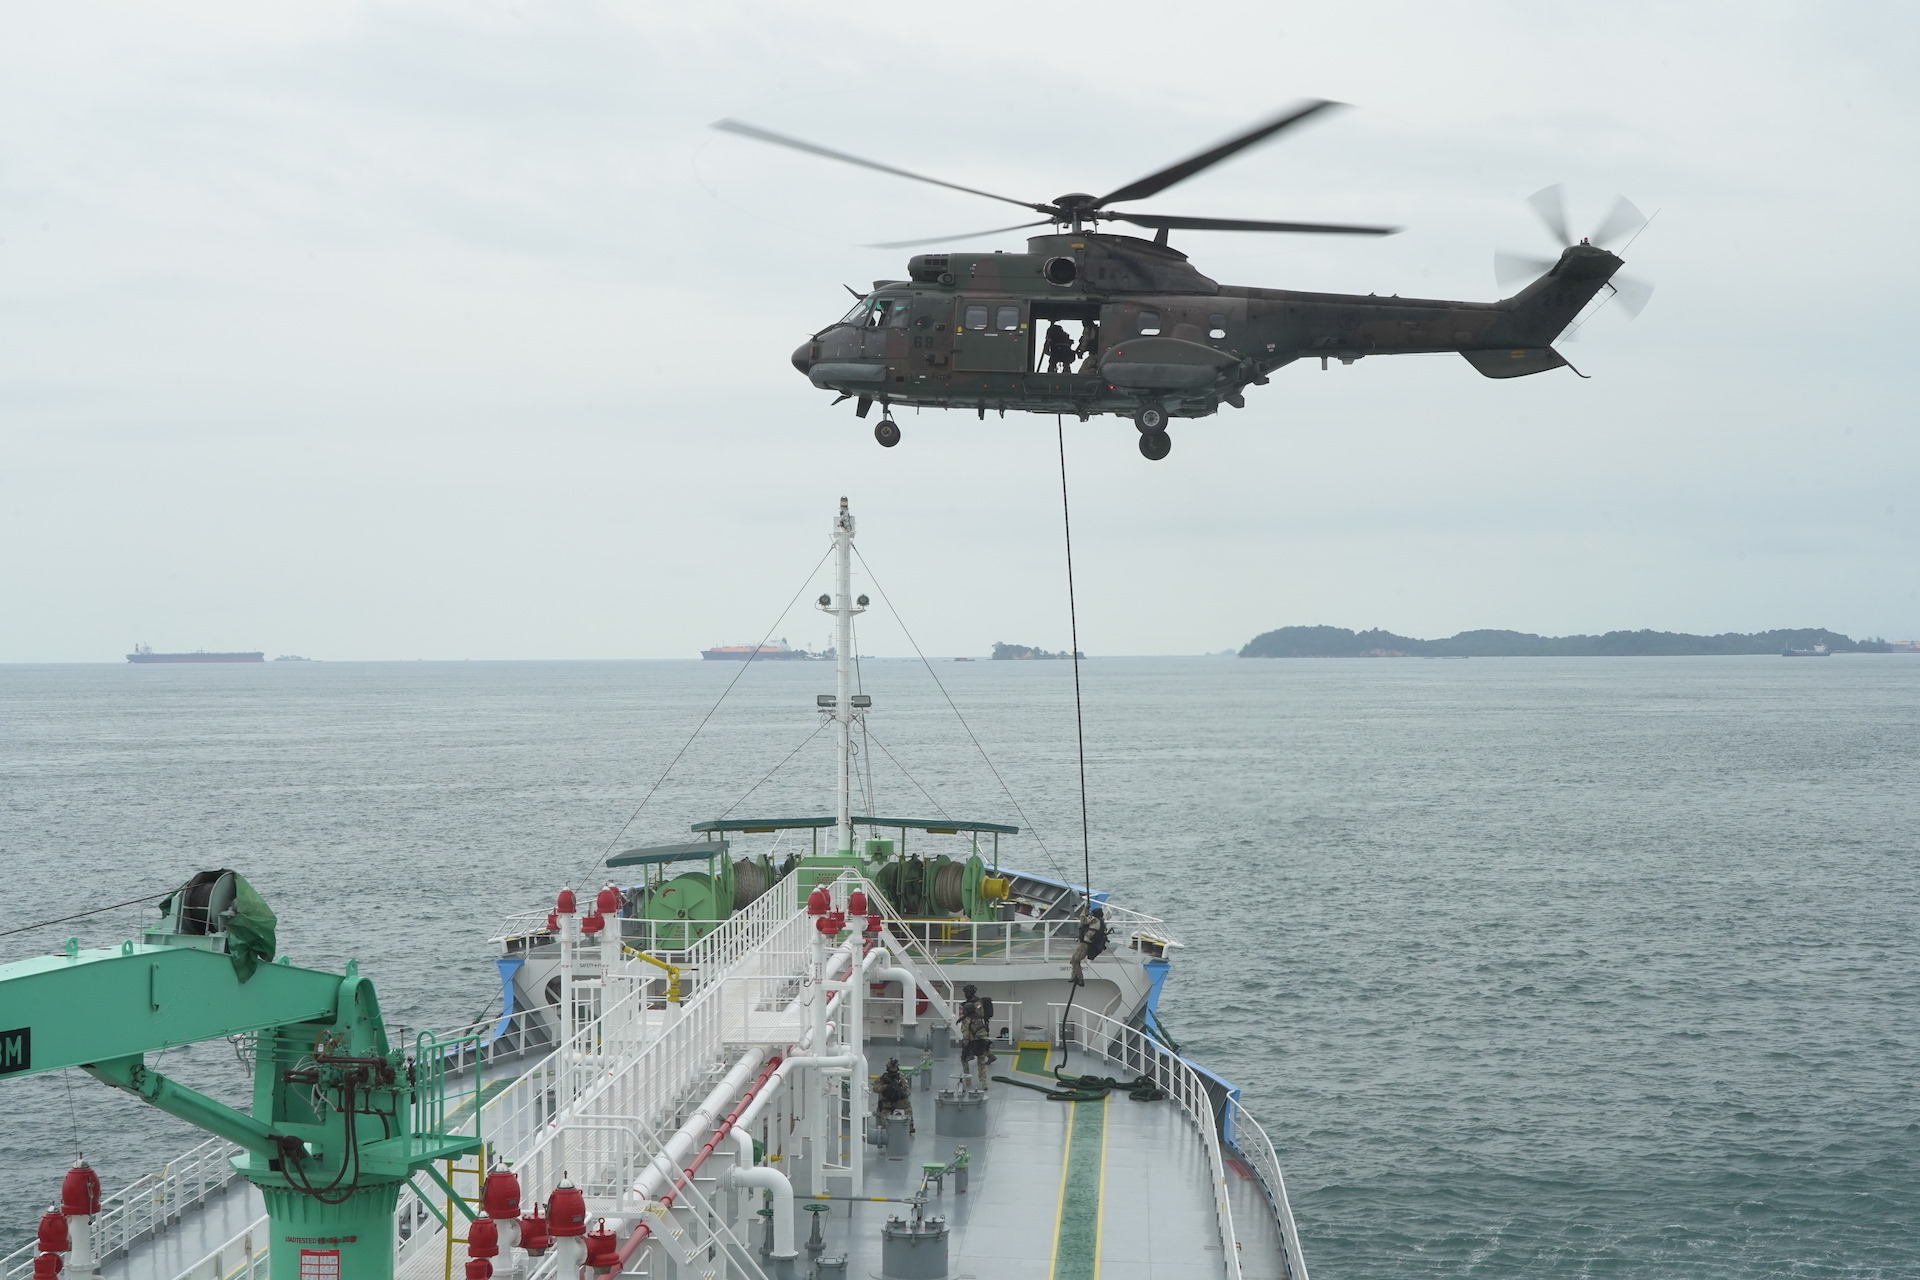 Maritime exercises test national agencies' response against security threats